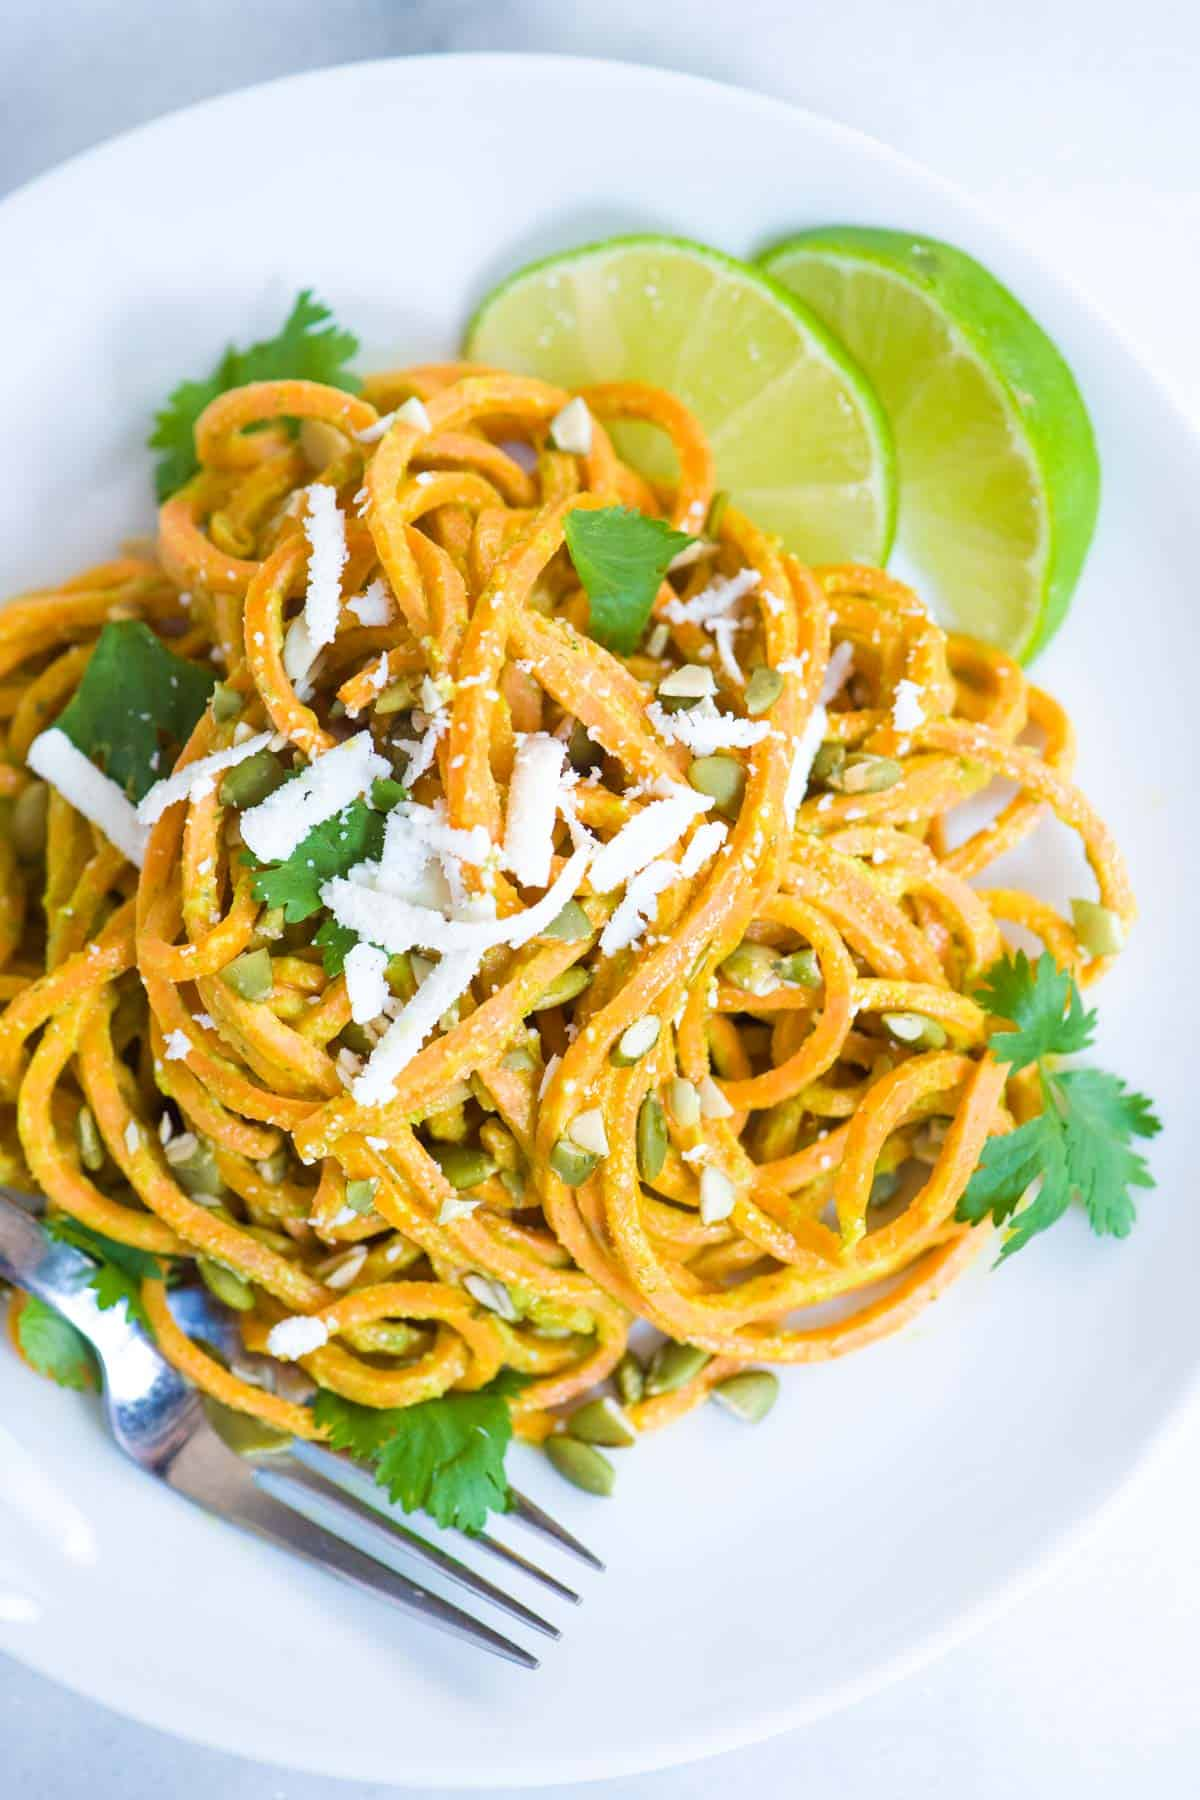 How to make our 25-minute sweet potato noodles recipe with a creamy dairy-free avocado sauce.